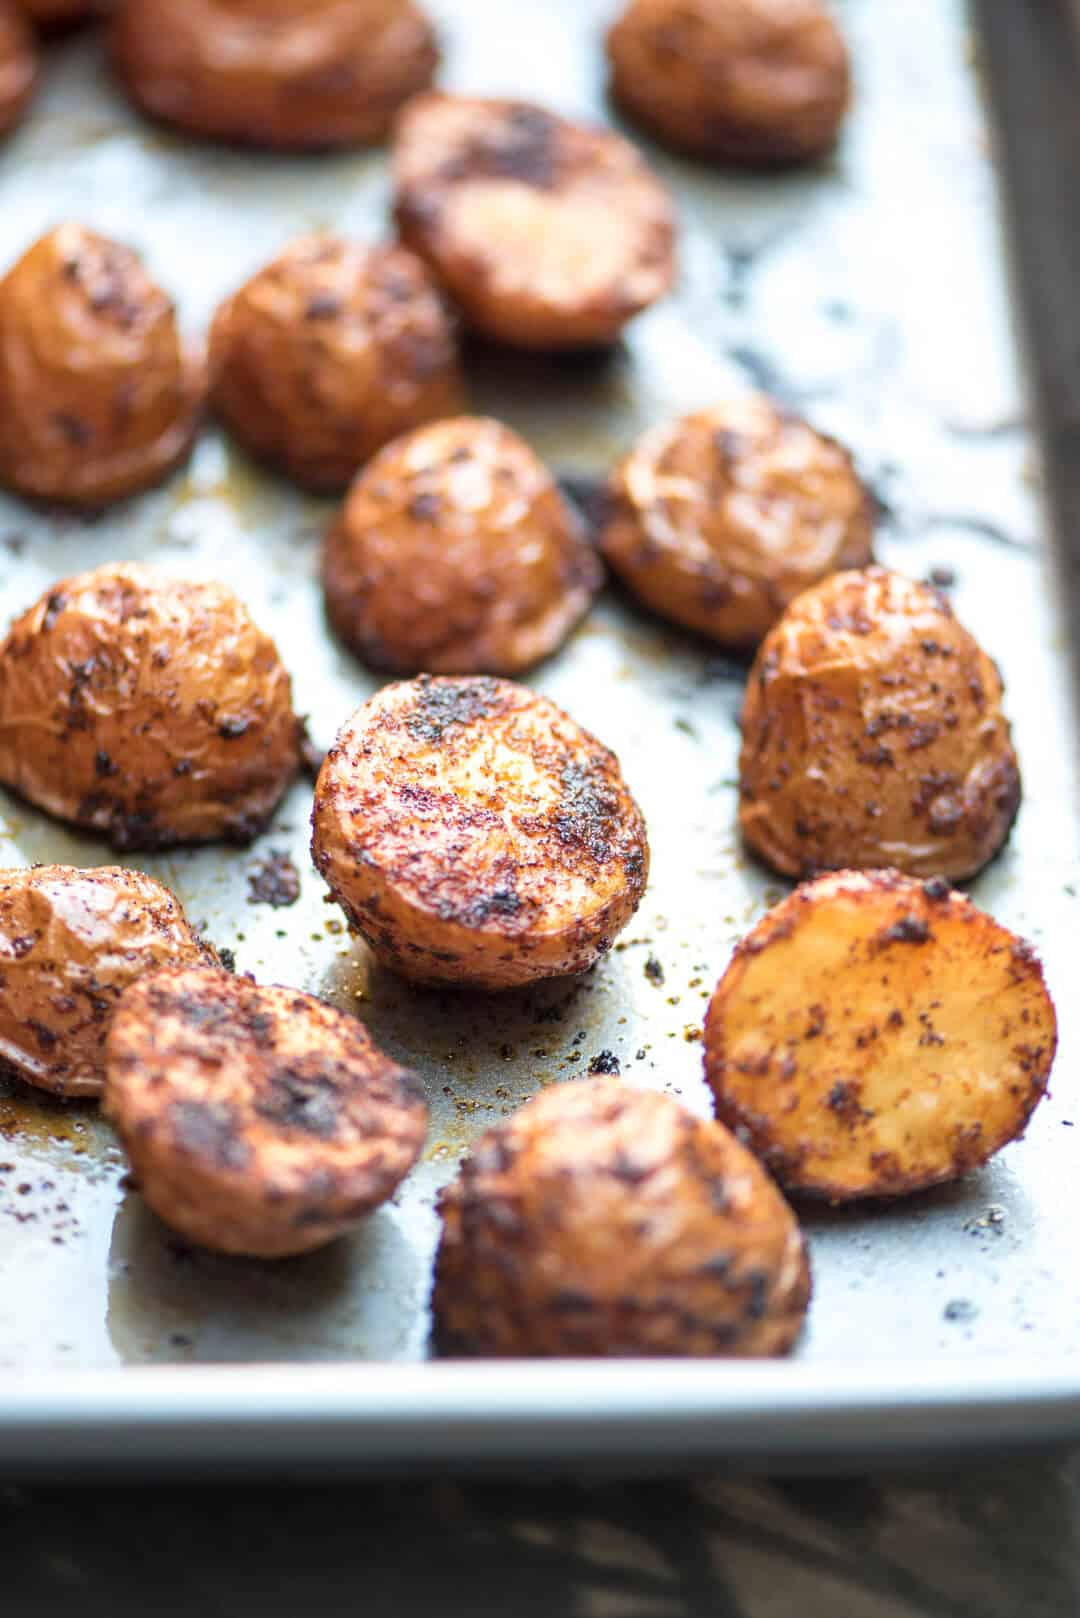 Oven Roasted BBQ Potatoes on a baking sheet.